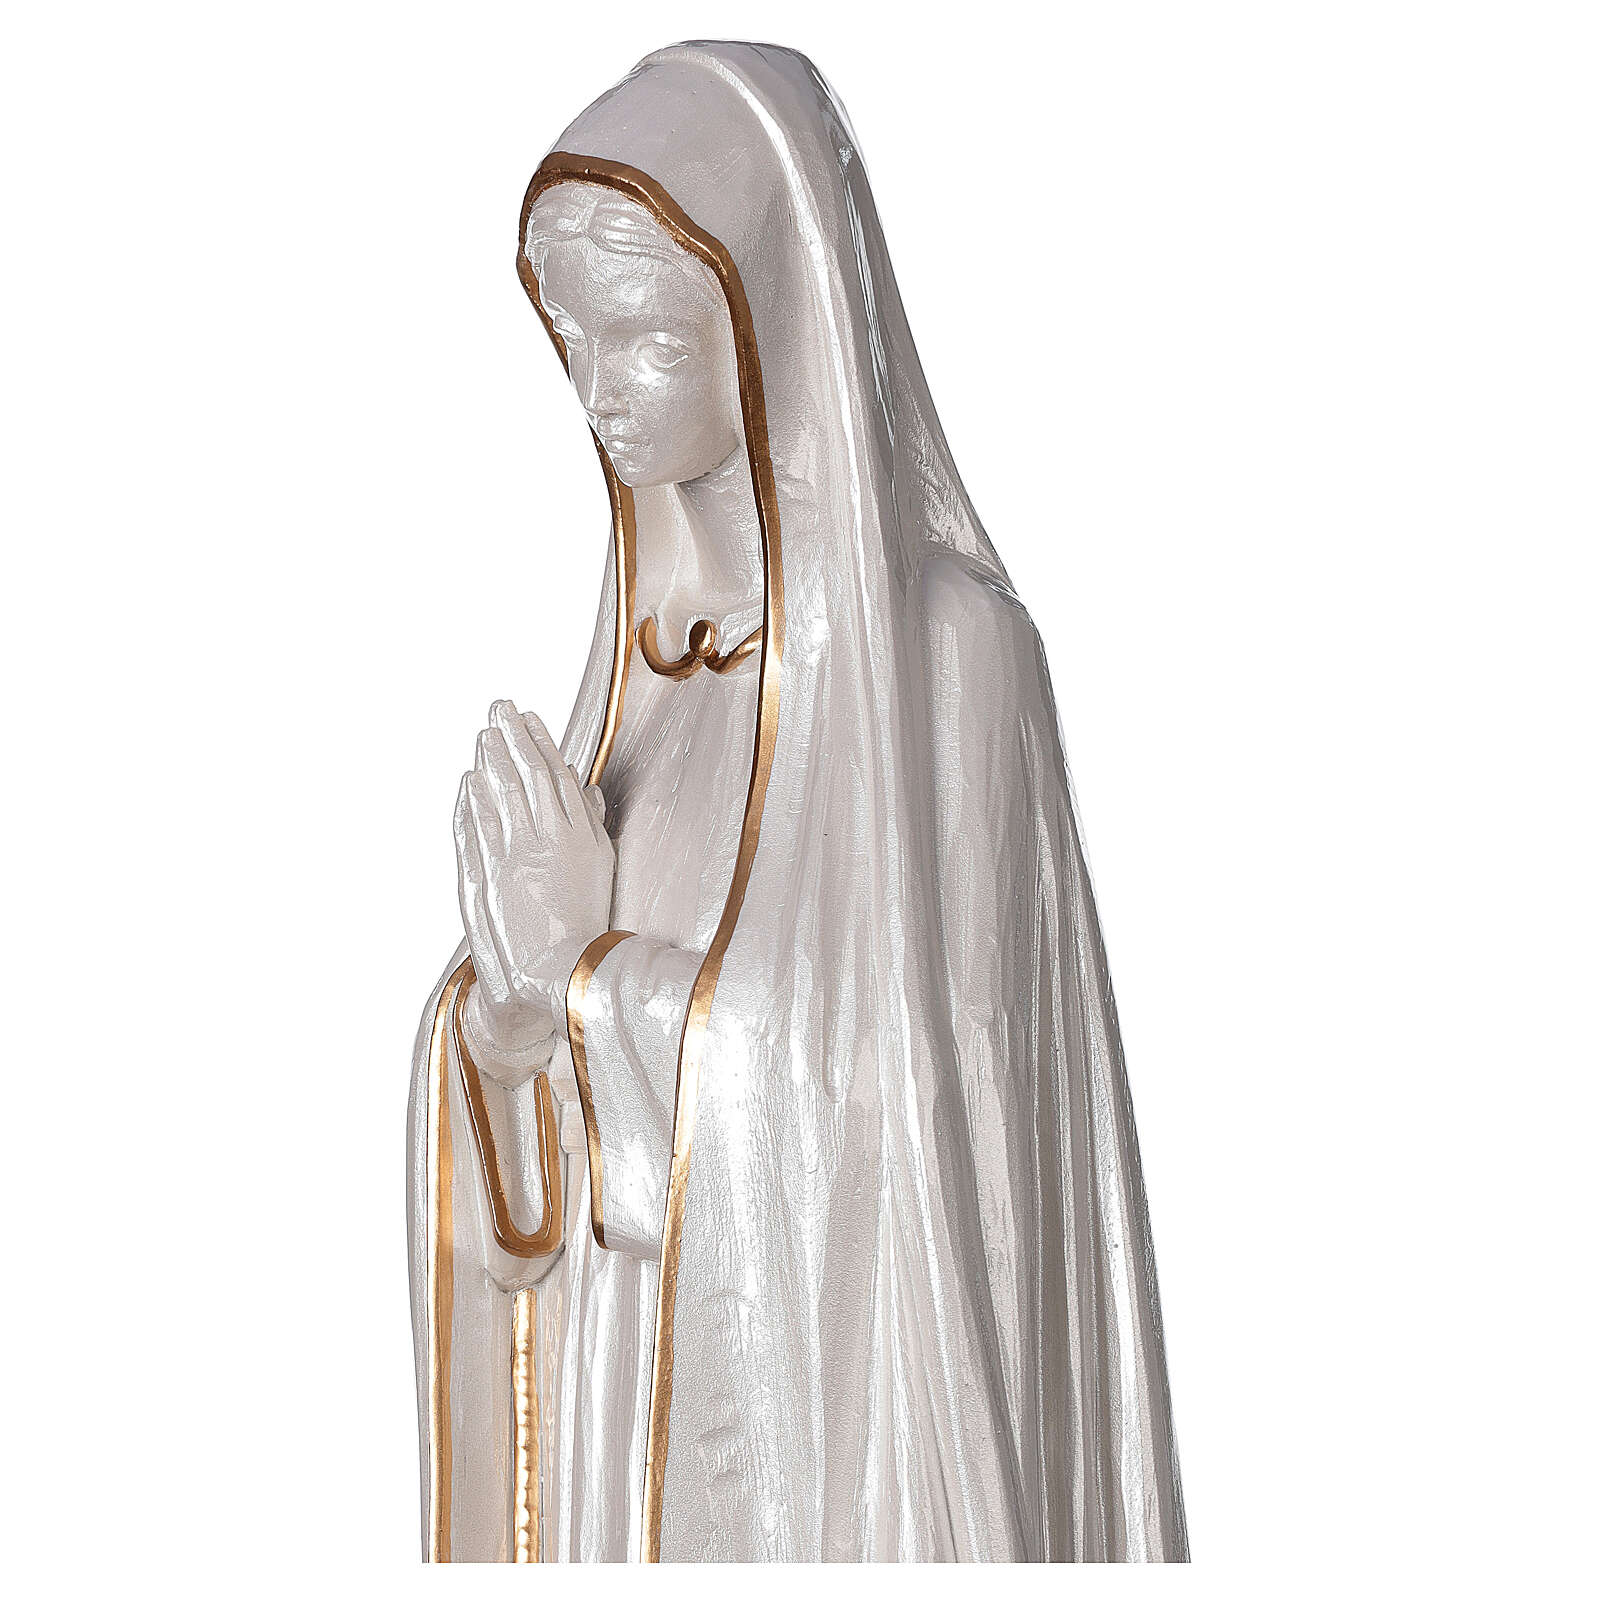 Statue of Our Lady Fatima in mother of pearl marble 60 cm 4